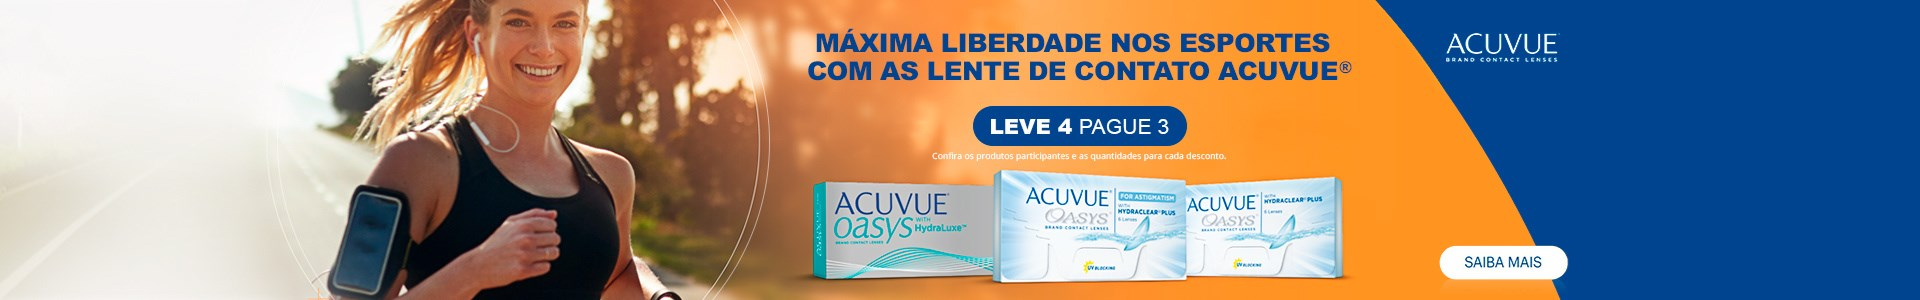 Acuvue 25% OFF